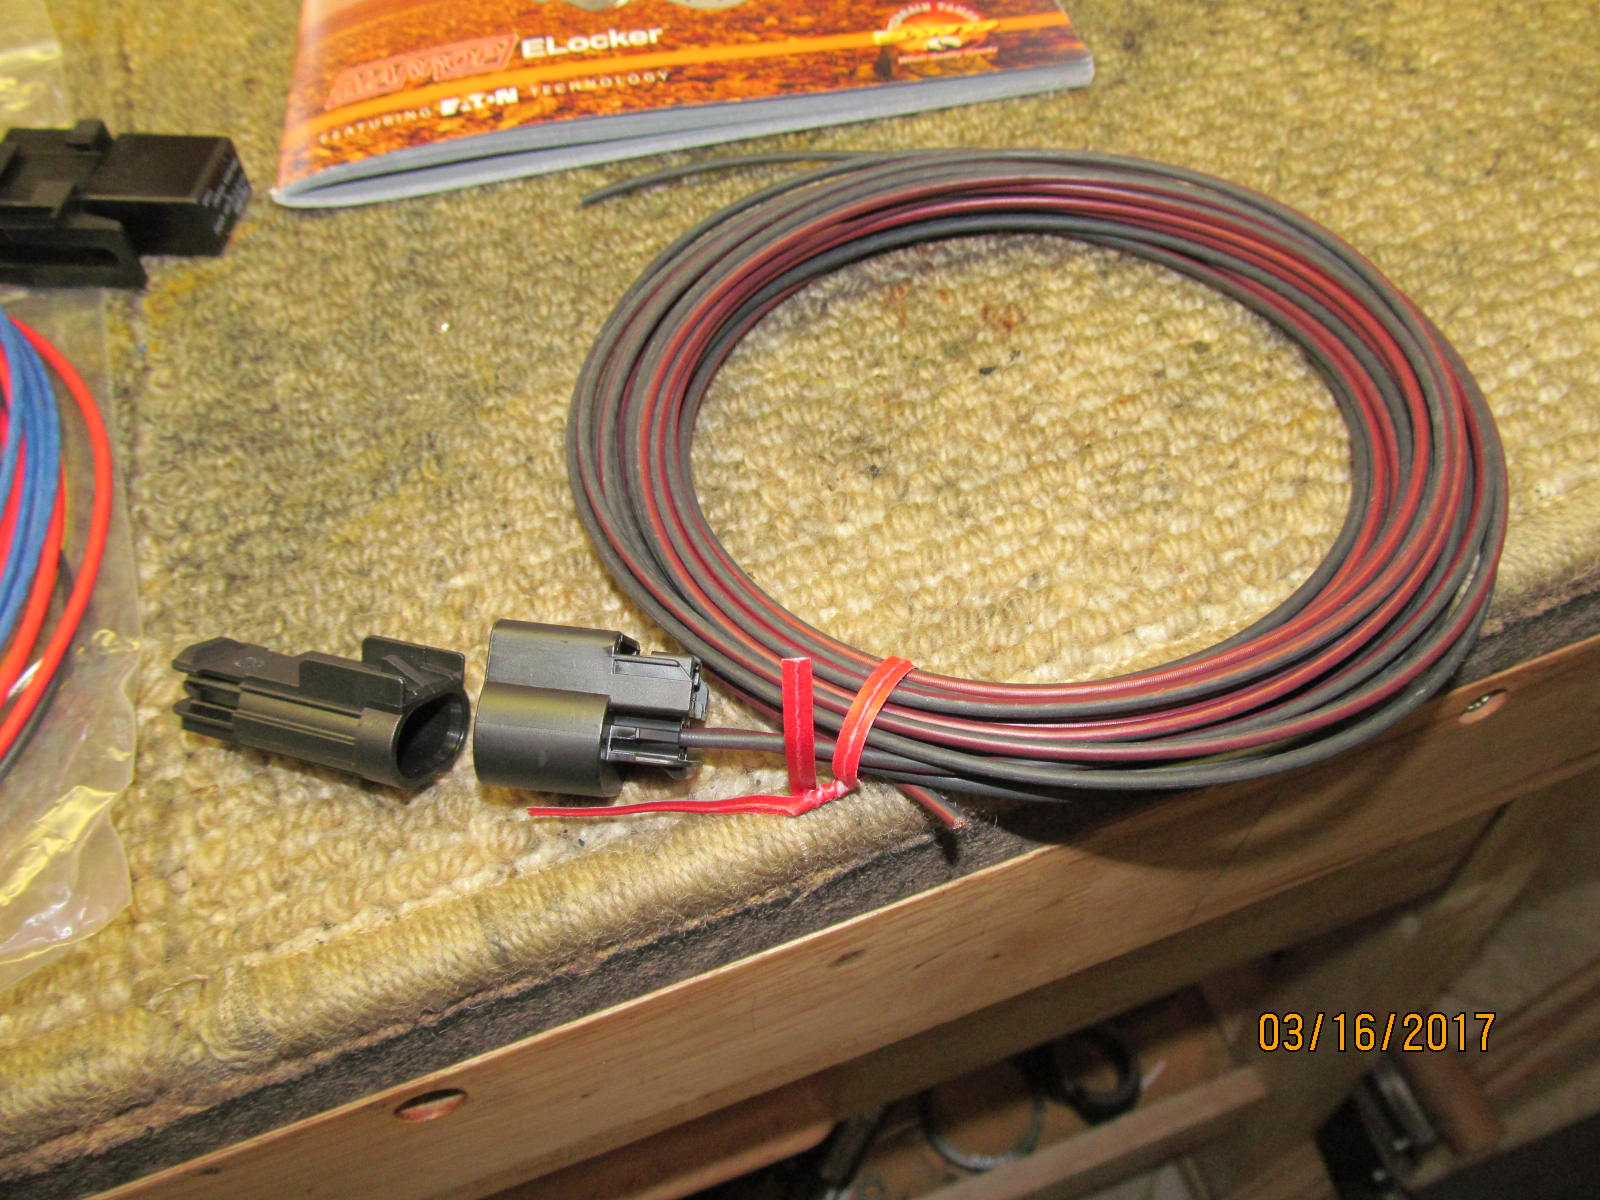 Gear Install Toyota Wire Harness Materials The Plug That Goes To Rear Harrop 2 Wires